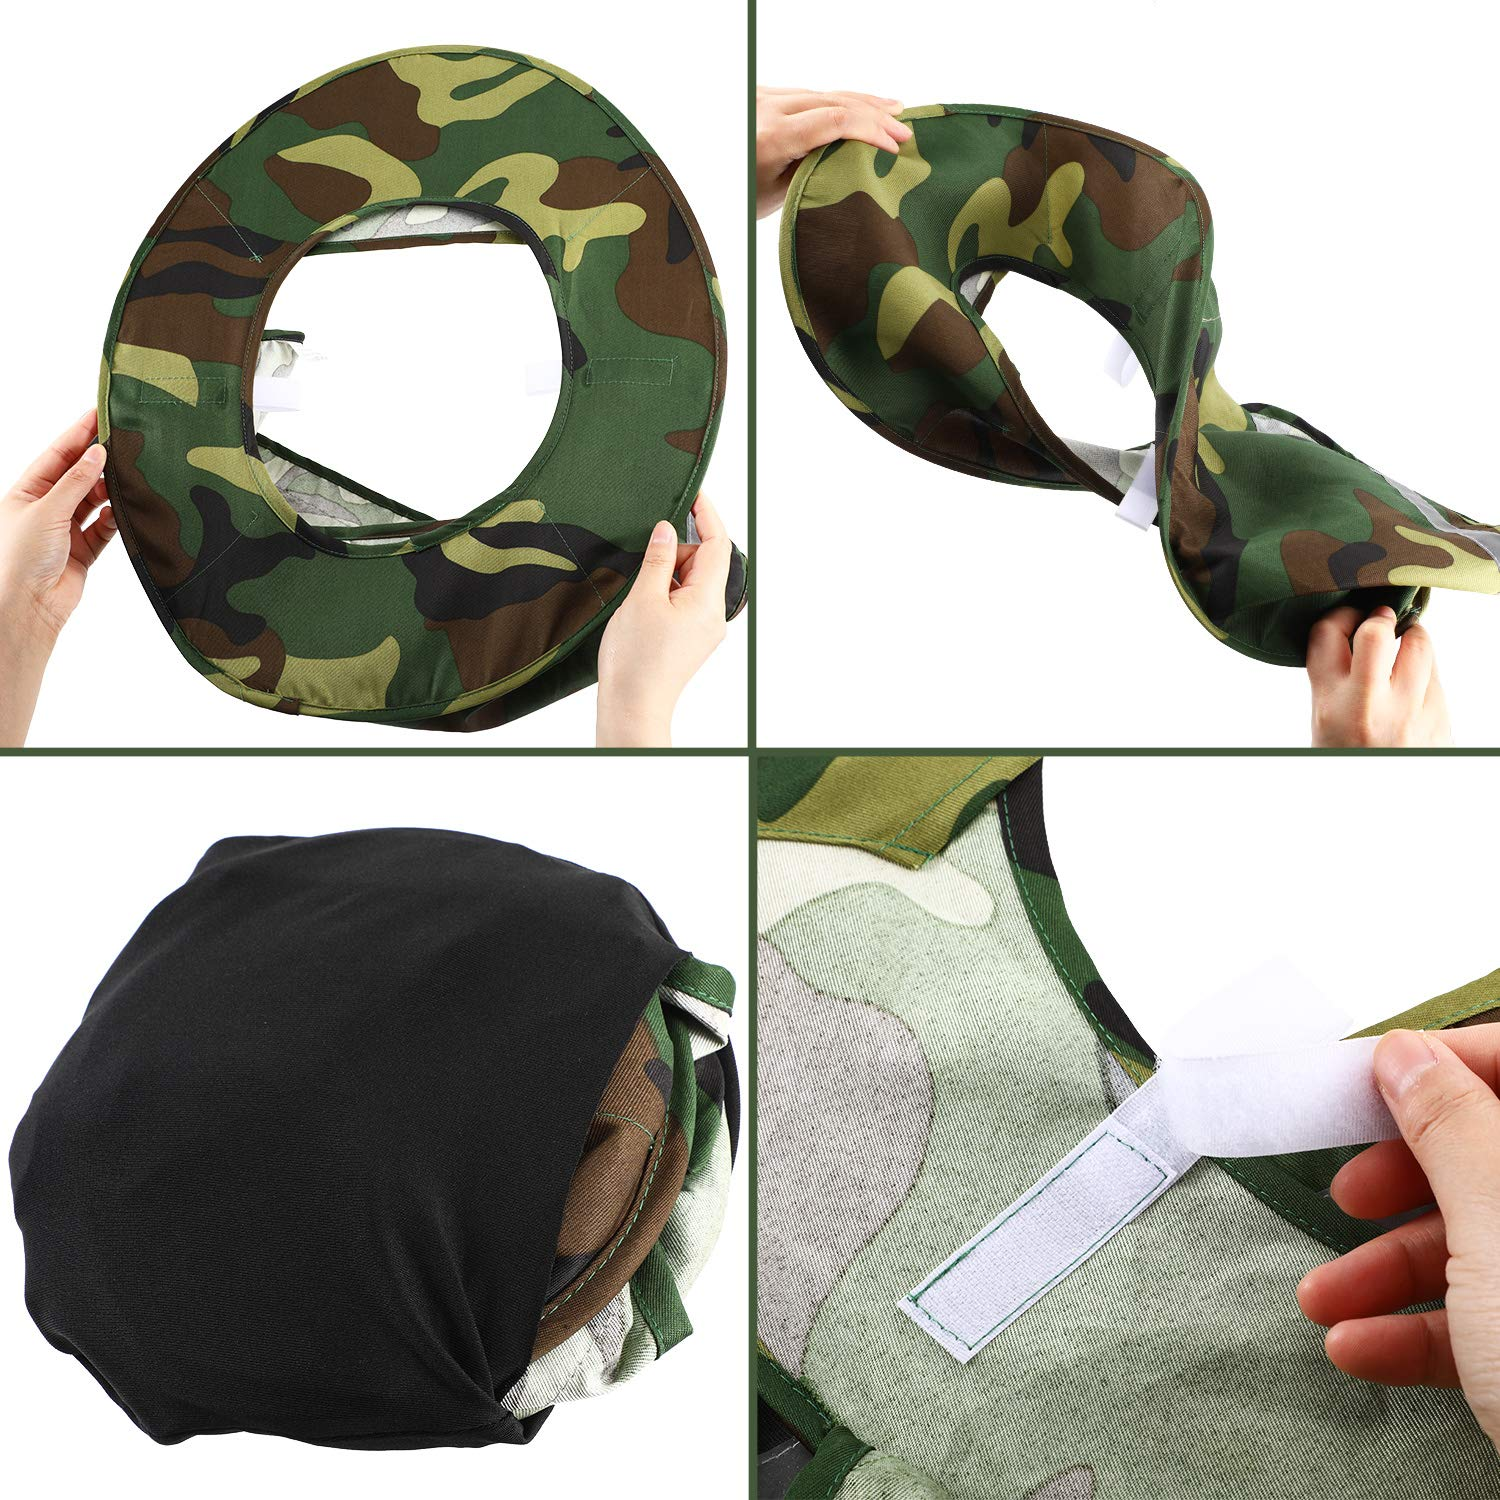 Jovitec 2 Pieces Helmet Sun Shade Hard Hat Sun Neck Shield with Full Brim, Reflective Stripe, Adhesive Hook for Safety Helmet (Camouflage) by Jovitec (Image #4)